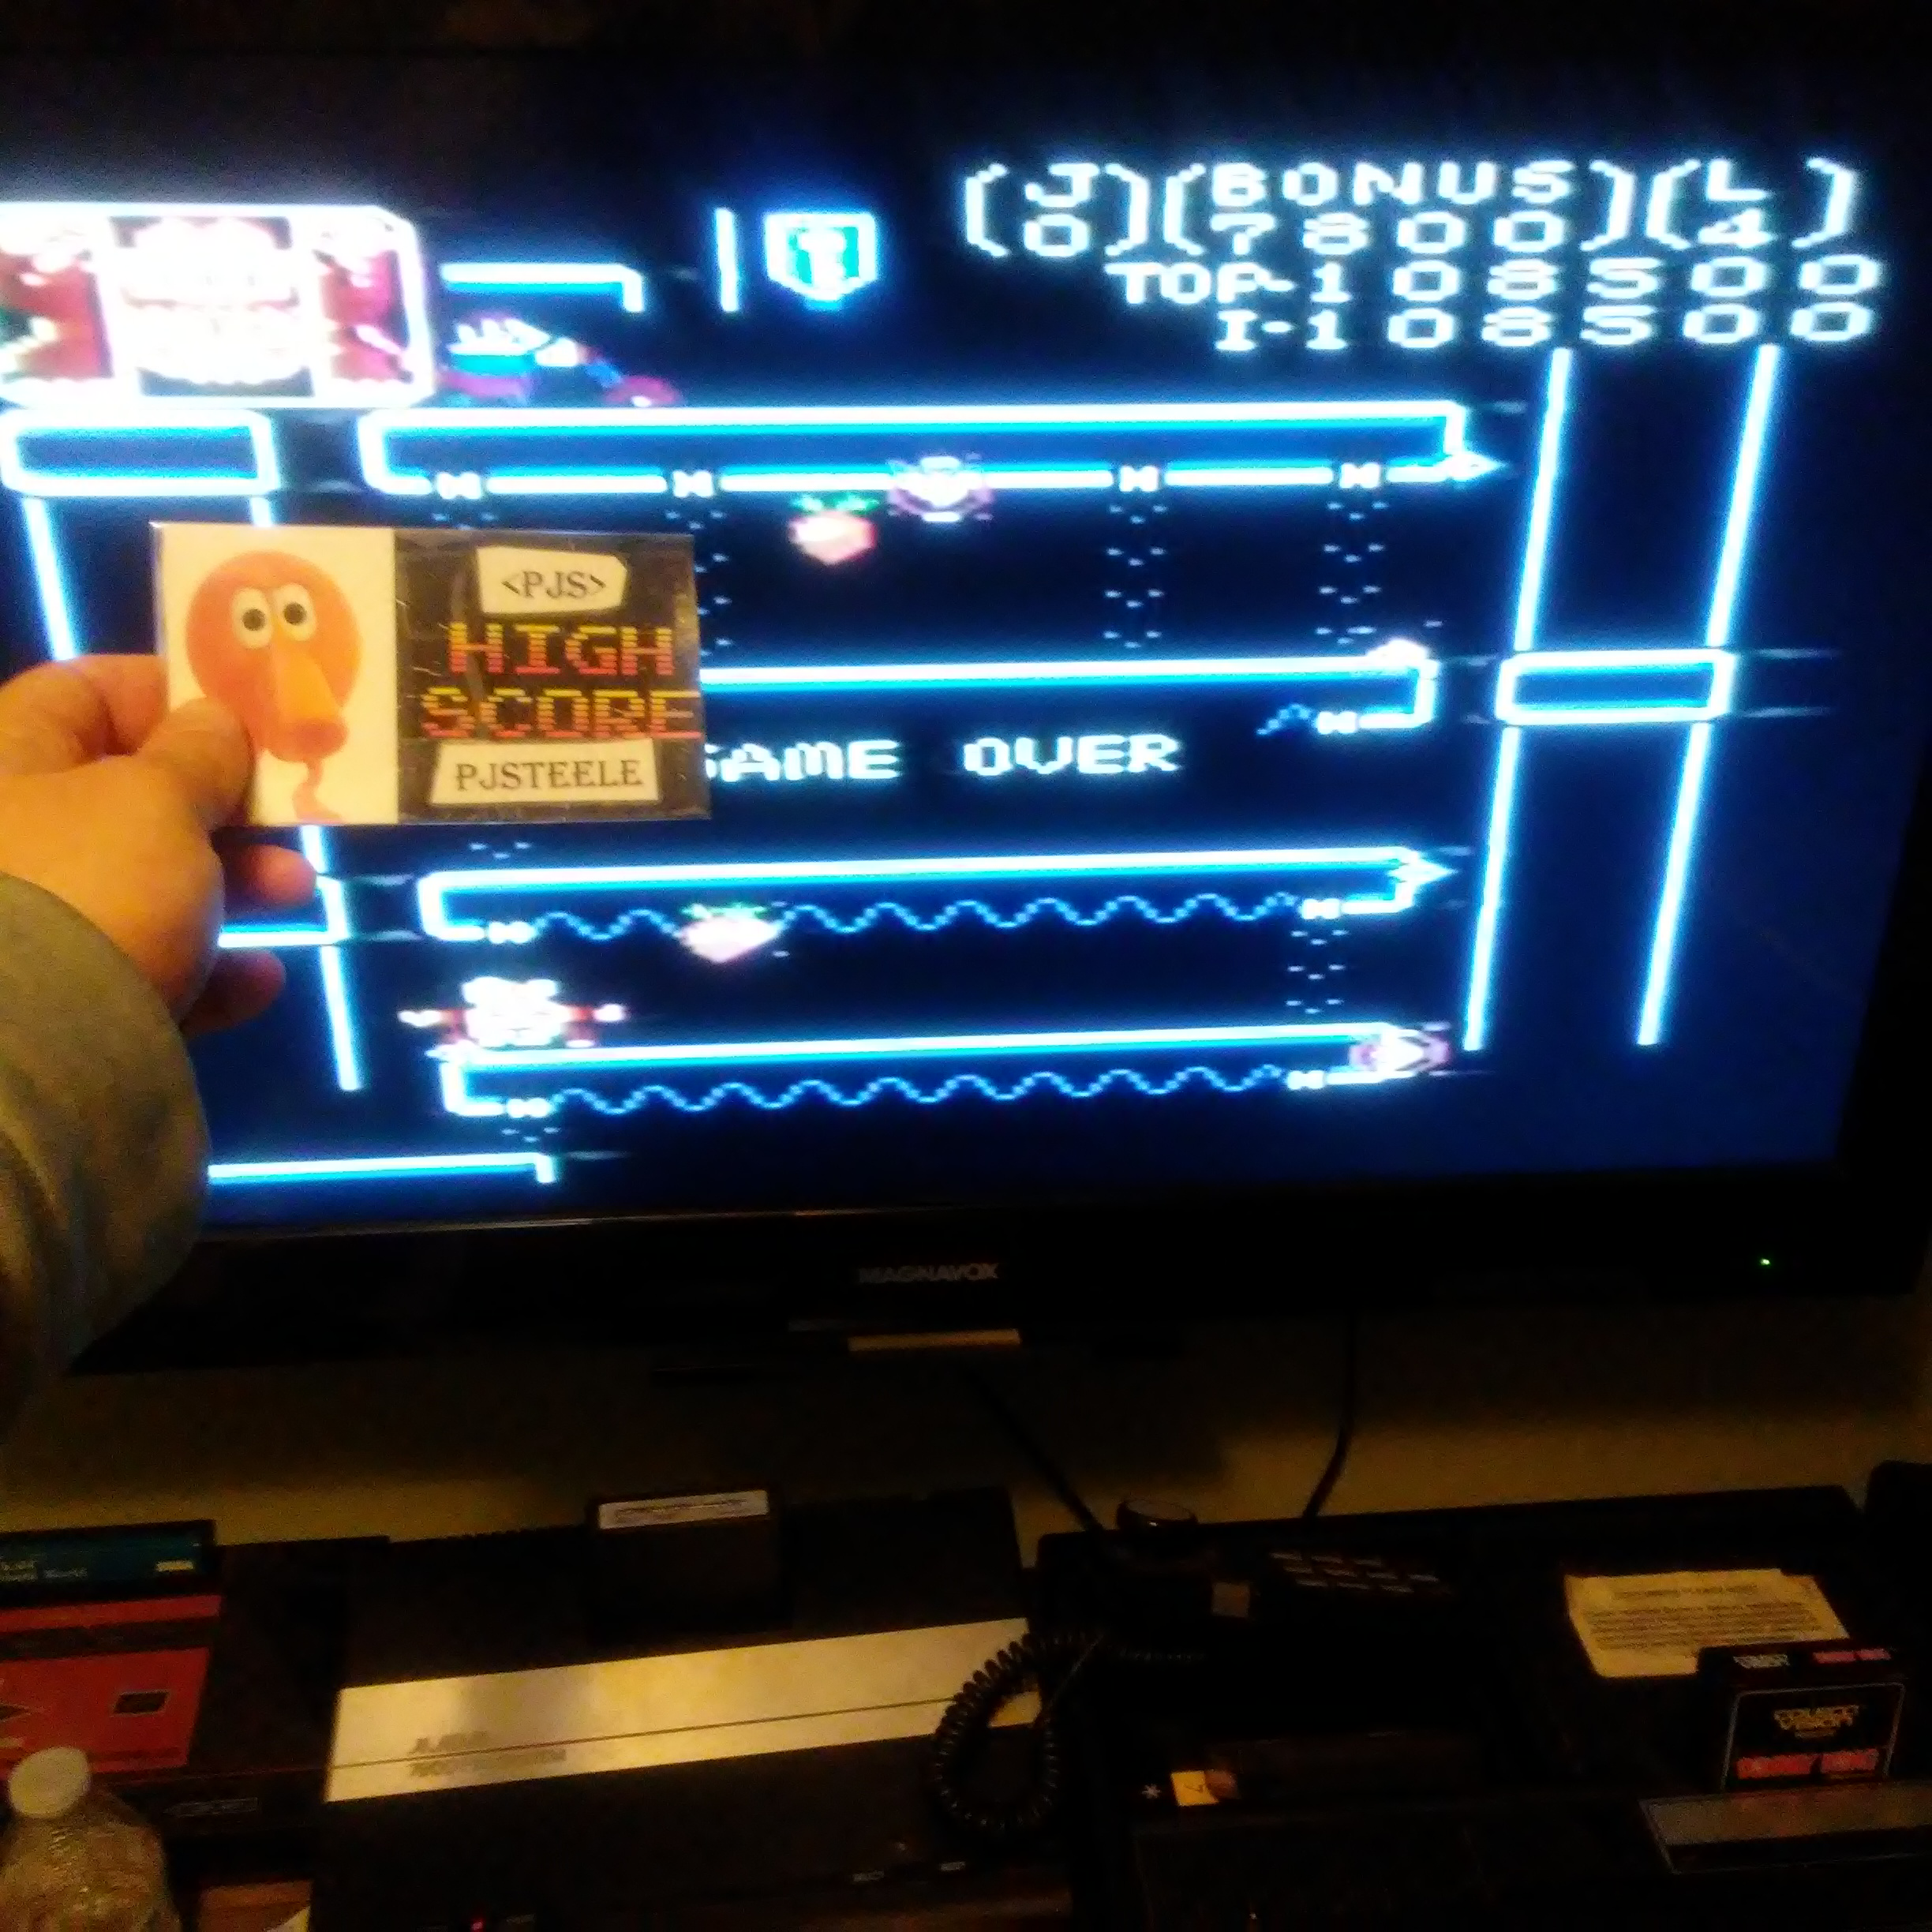 Donkey Kong Jr: Standard 108,500 points